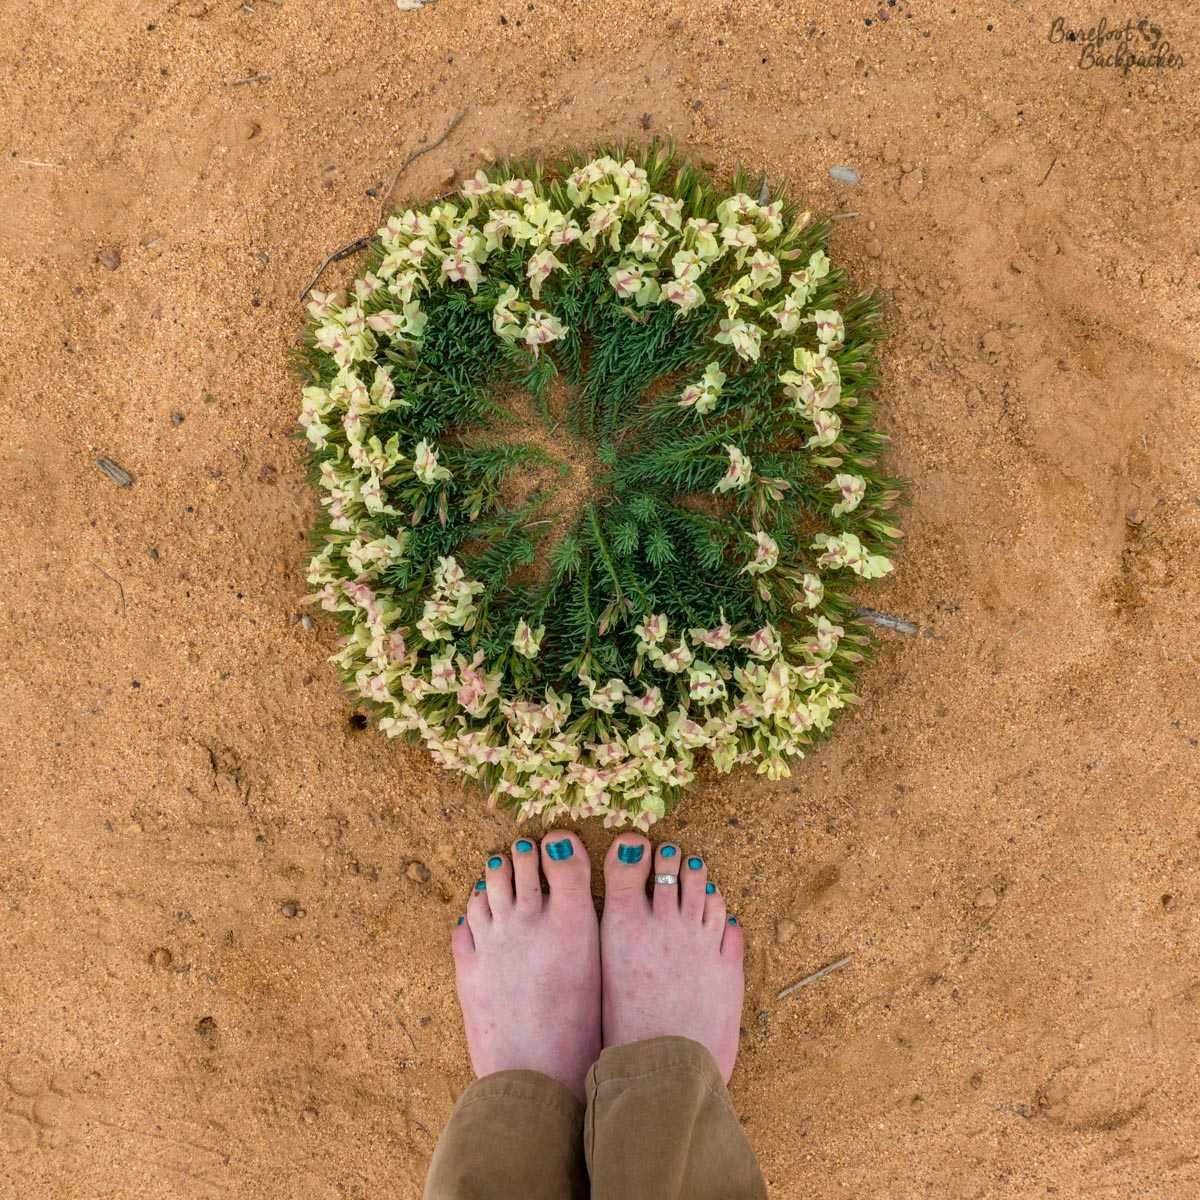 Everlastings / Wildflowers – here in a wreath pattern, as seen on the roadside at Pindar. A pair of bare feet provided for size reference.